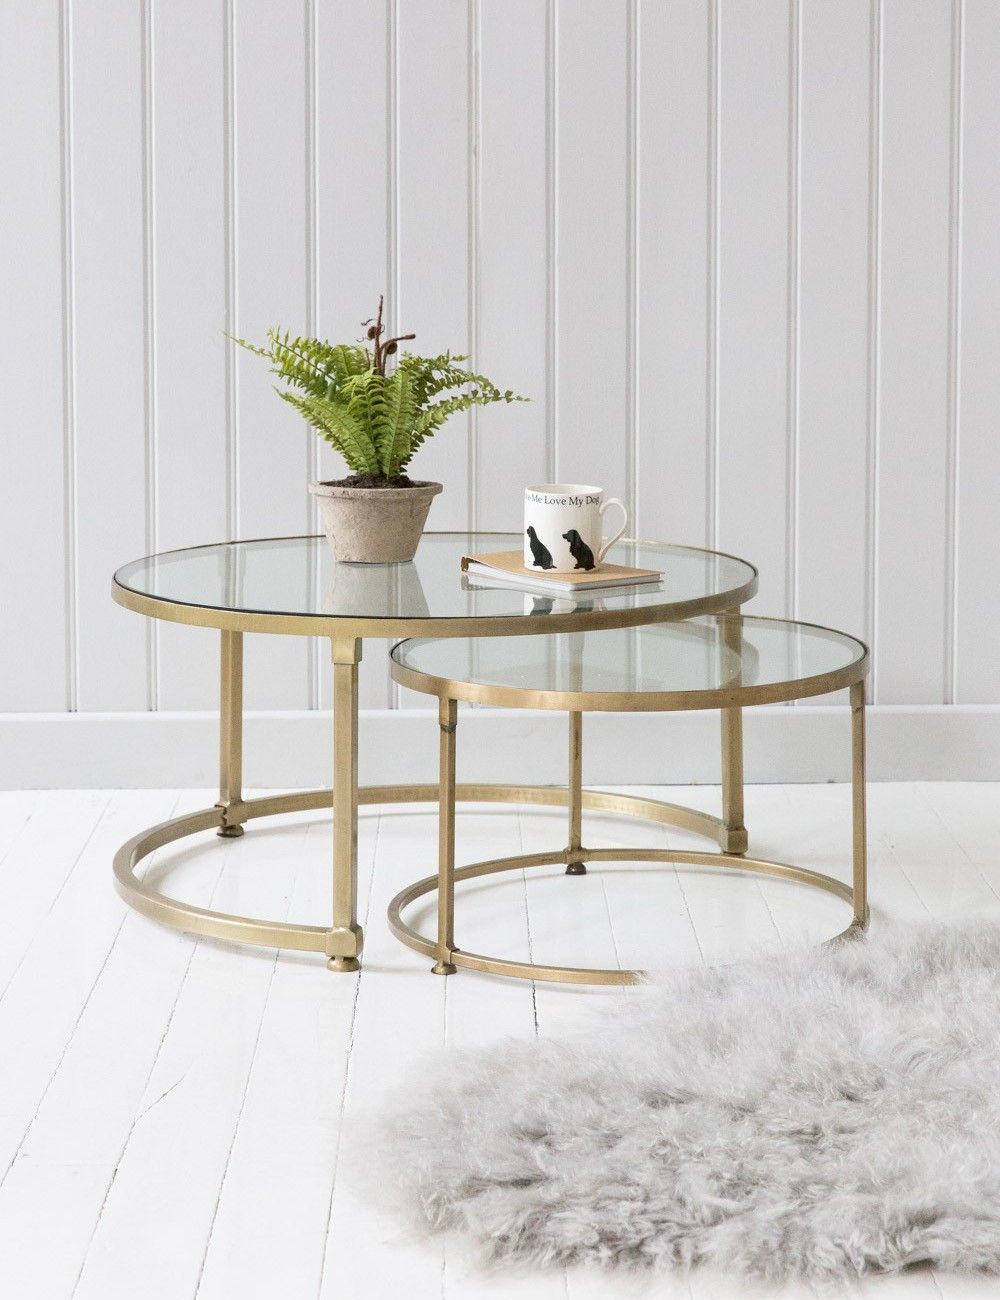 coco nesting round glass coffee tables final living room end roseandgrey stacking table set nostonosto page sauder soft modern homesense tures unfinished desk chair stanley